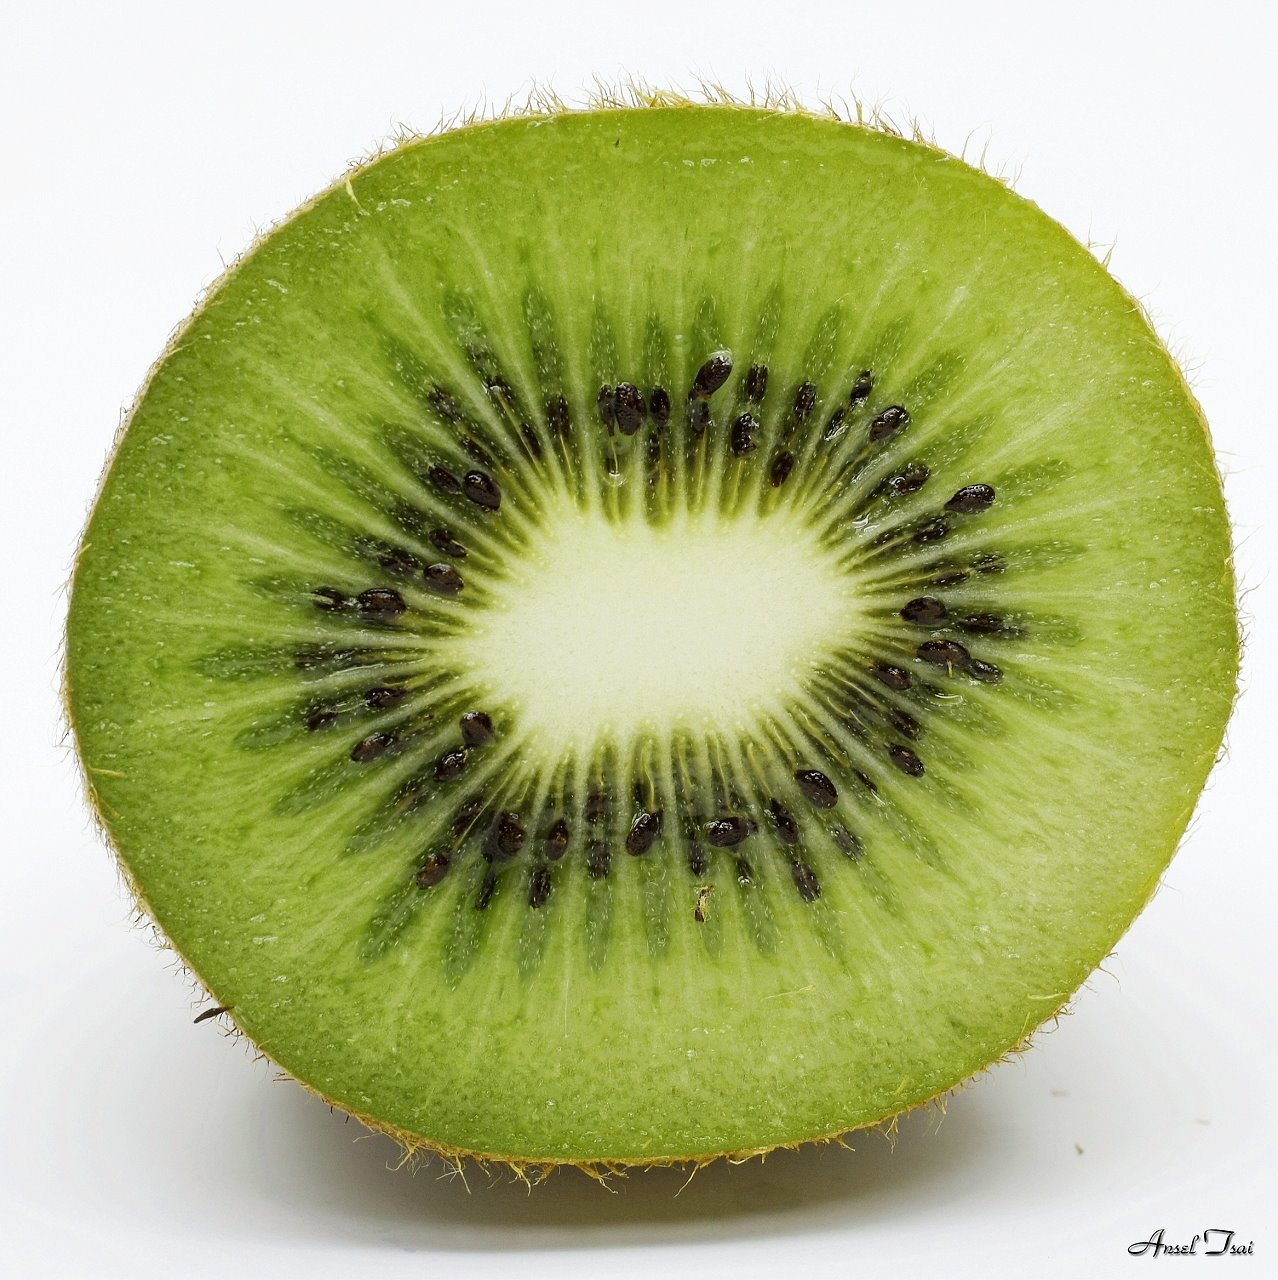 Into Kiwifruit